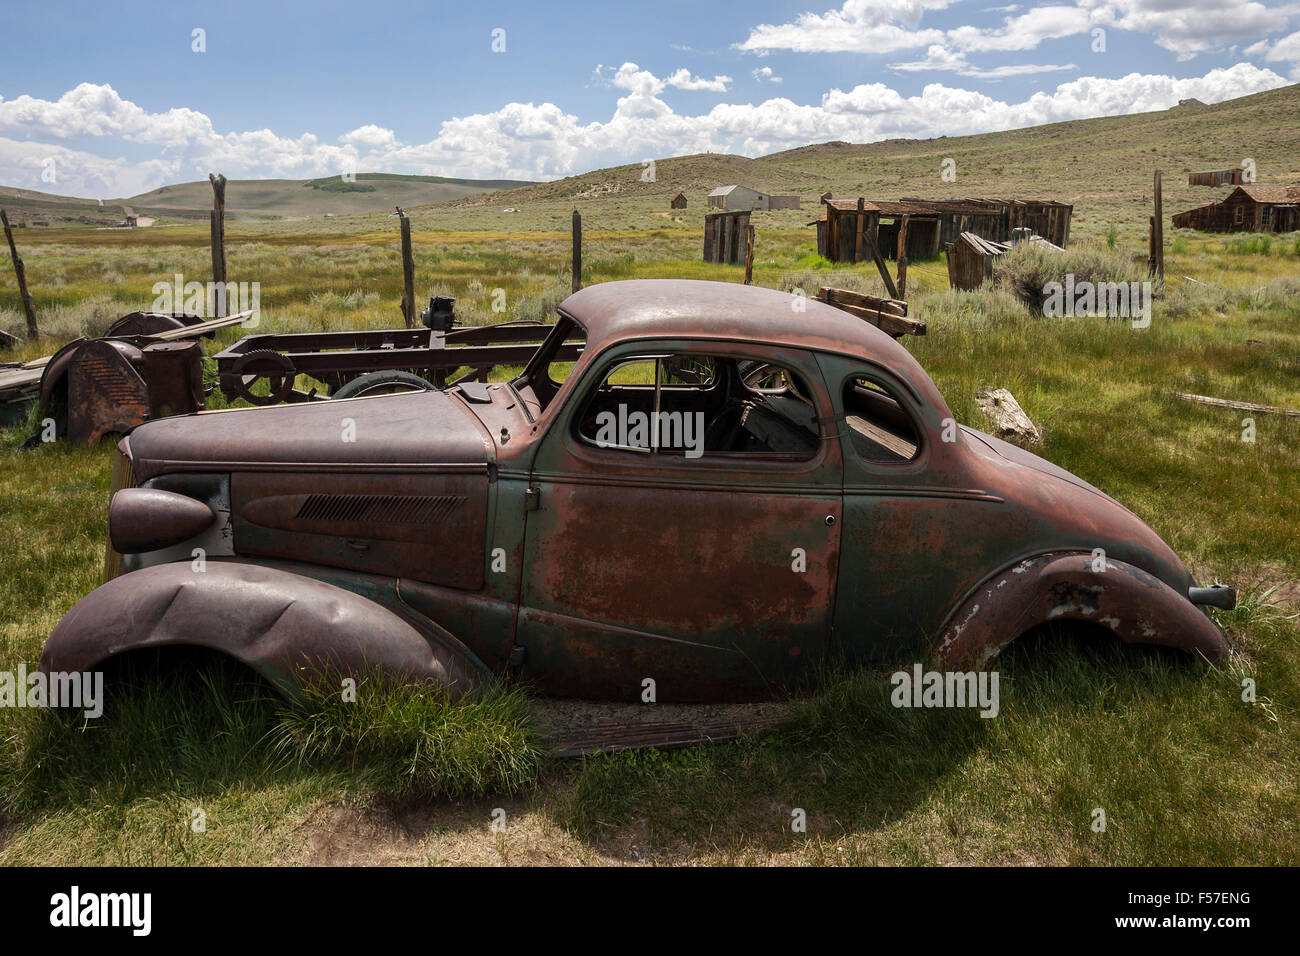 Rusted old car built in the 30s, Ghost Town, old gold mining town, Bodie State Historic Park, Bodie, California, - Stock Image